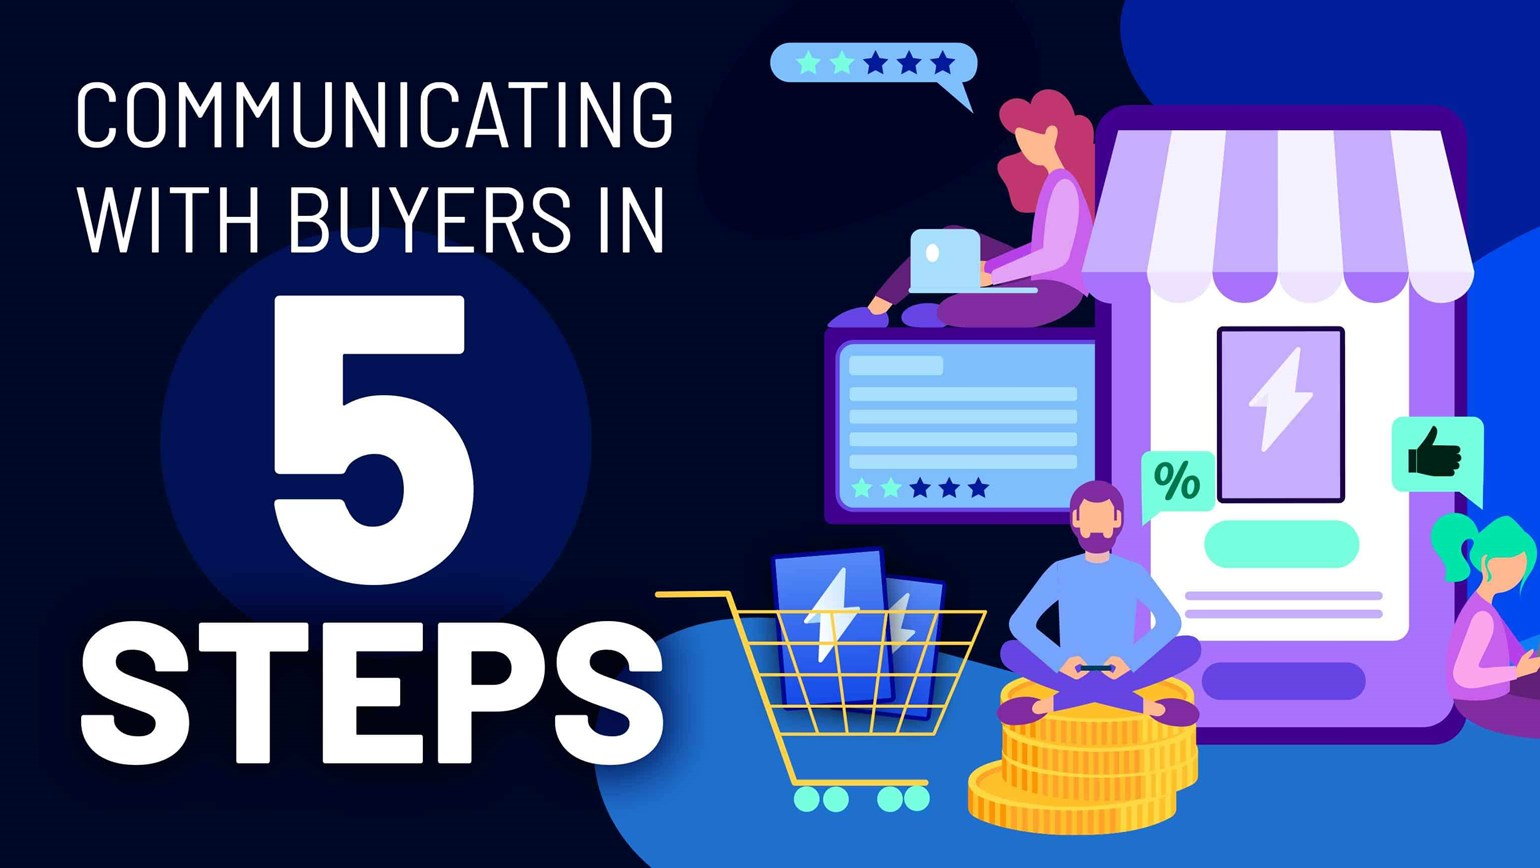 Buyer Communications 101: Communicating with Buyers in 5 Steps